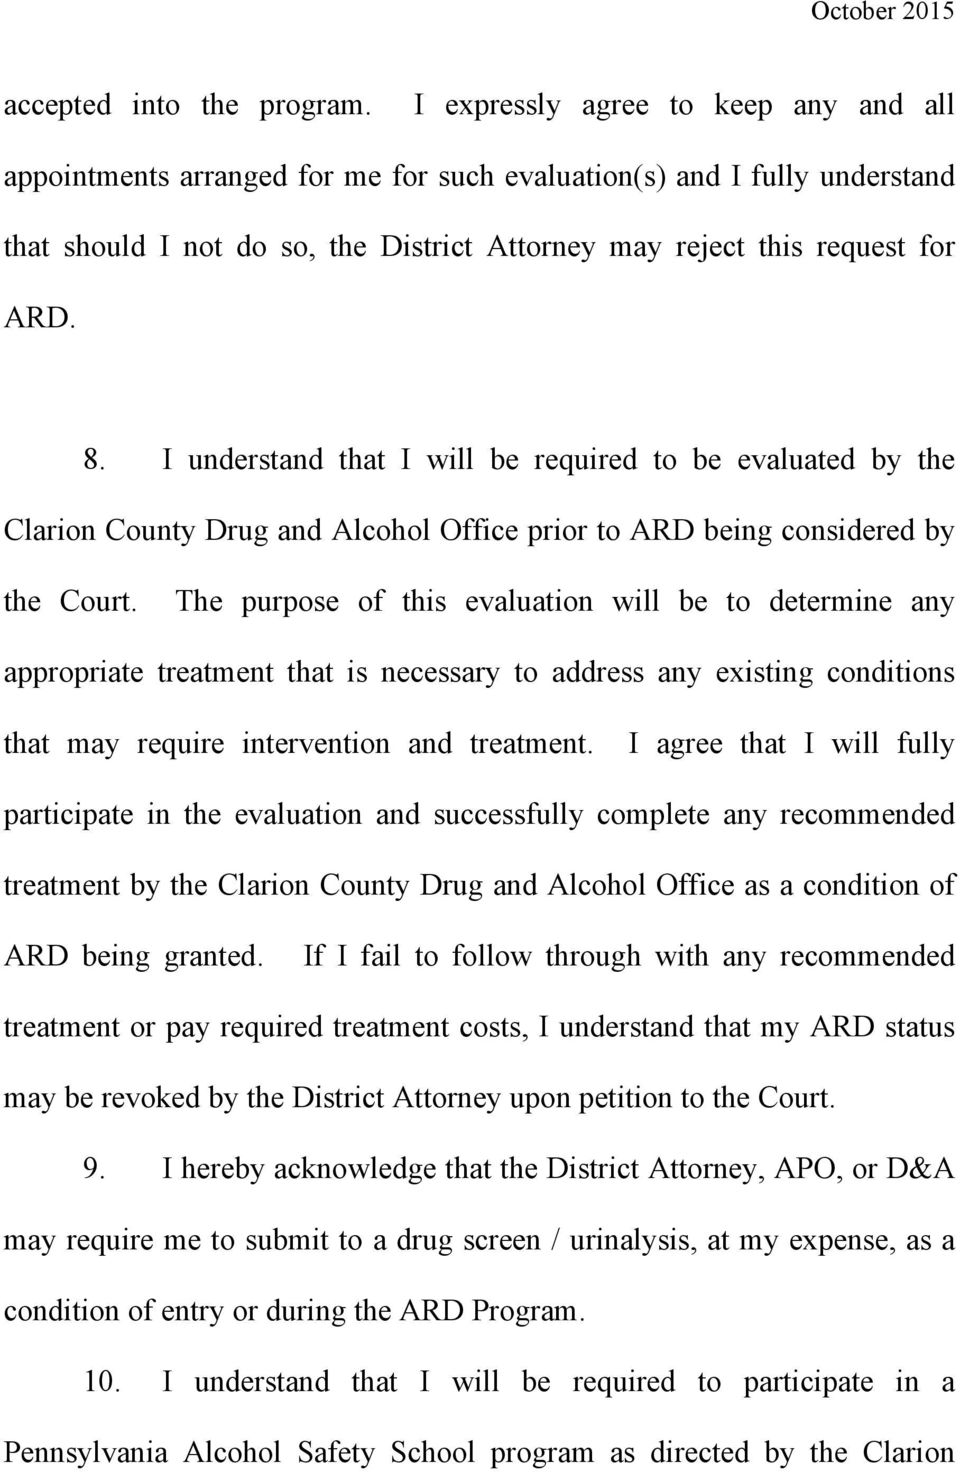 I understand that I will be required to be evaluated by the Clarion County Drug and Alcohol Office prior to ARD being considered by the Court.